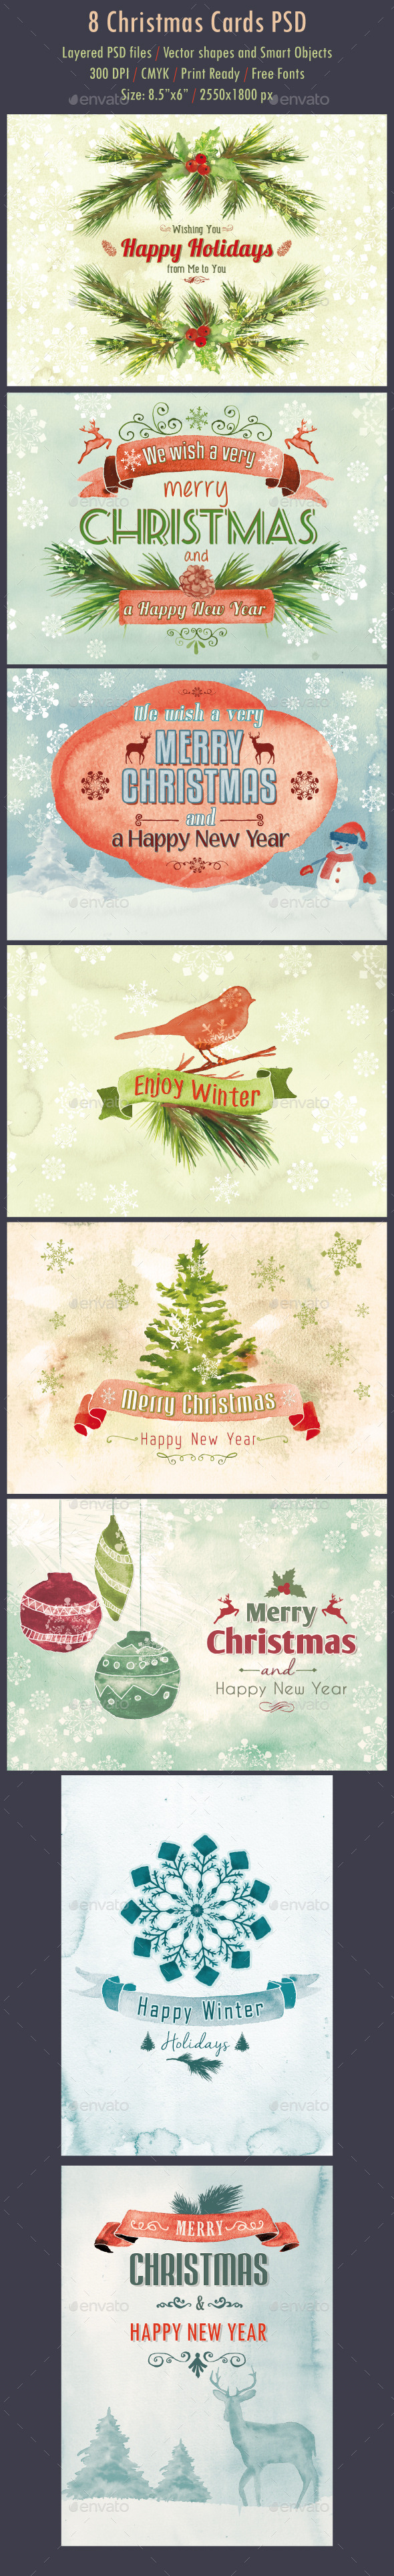 8 Watercolor Christmas Cards PSD - Cards & Invites Print Templates